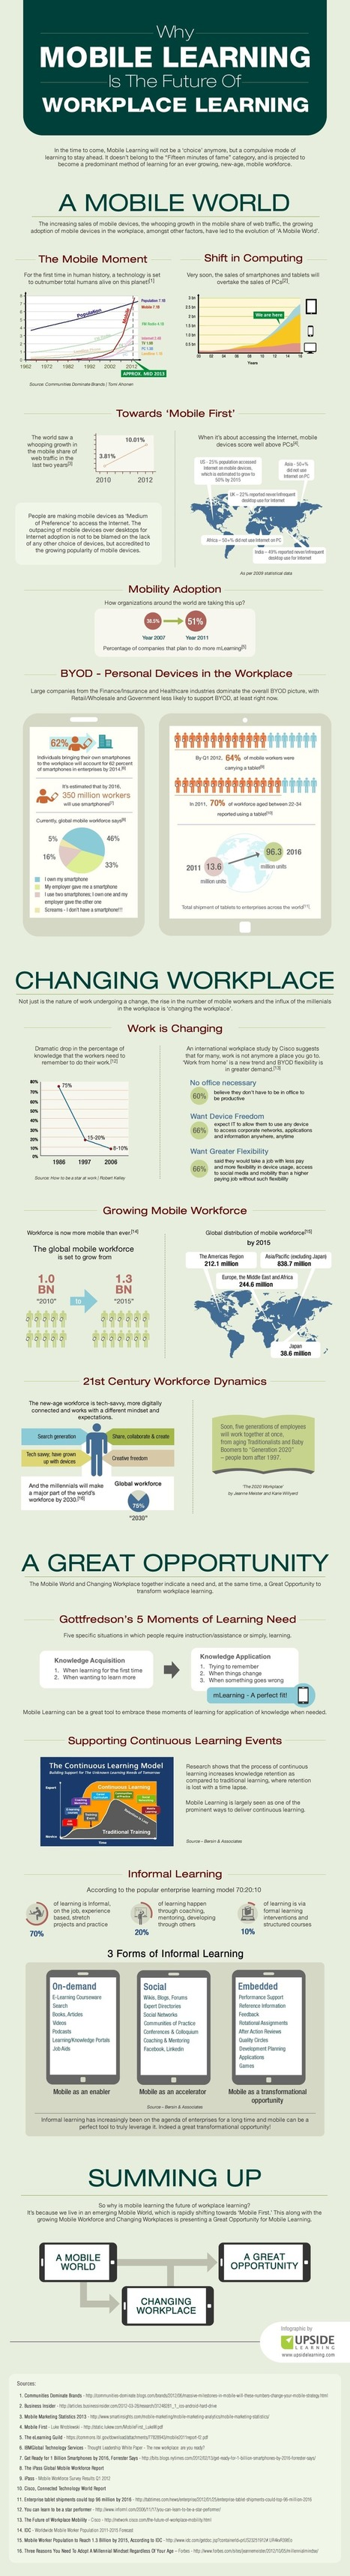 [Infografía] Why mobile learning is the future of workplace learning | Perspectives on Emotions | Scoop.it